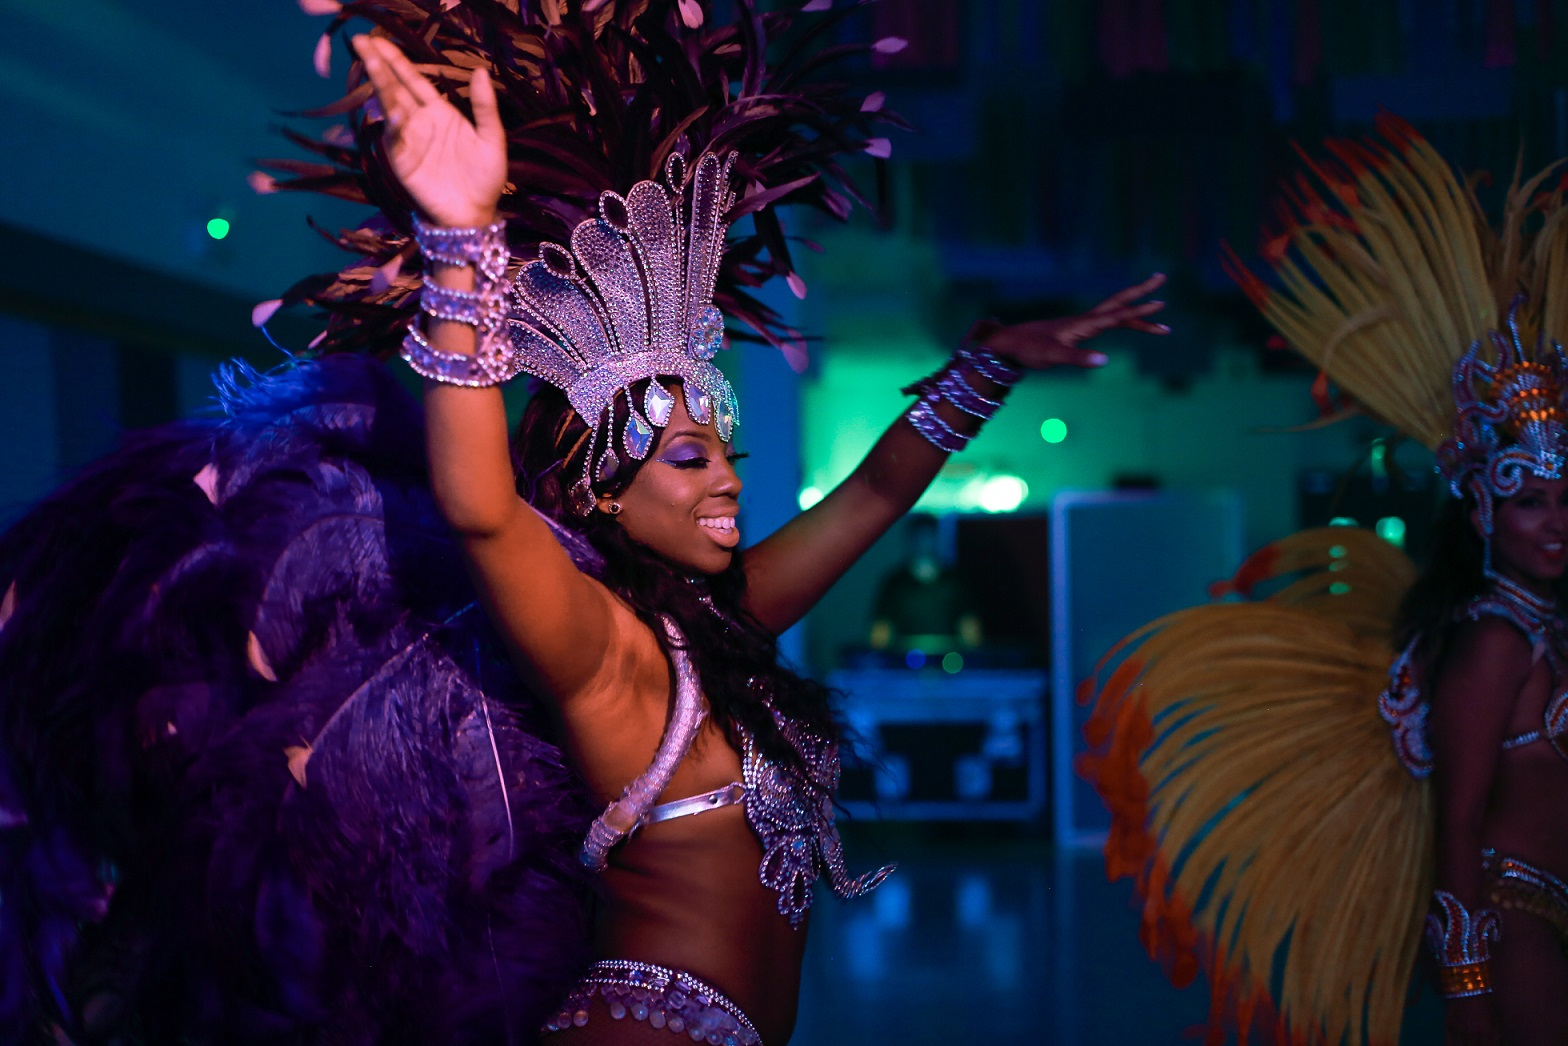 Rio Samba dancer performing at a party